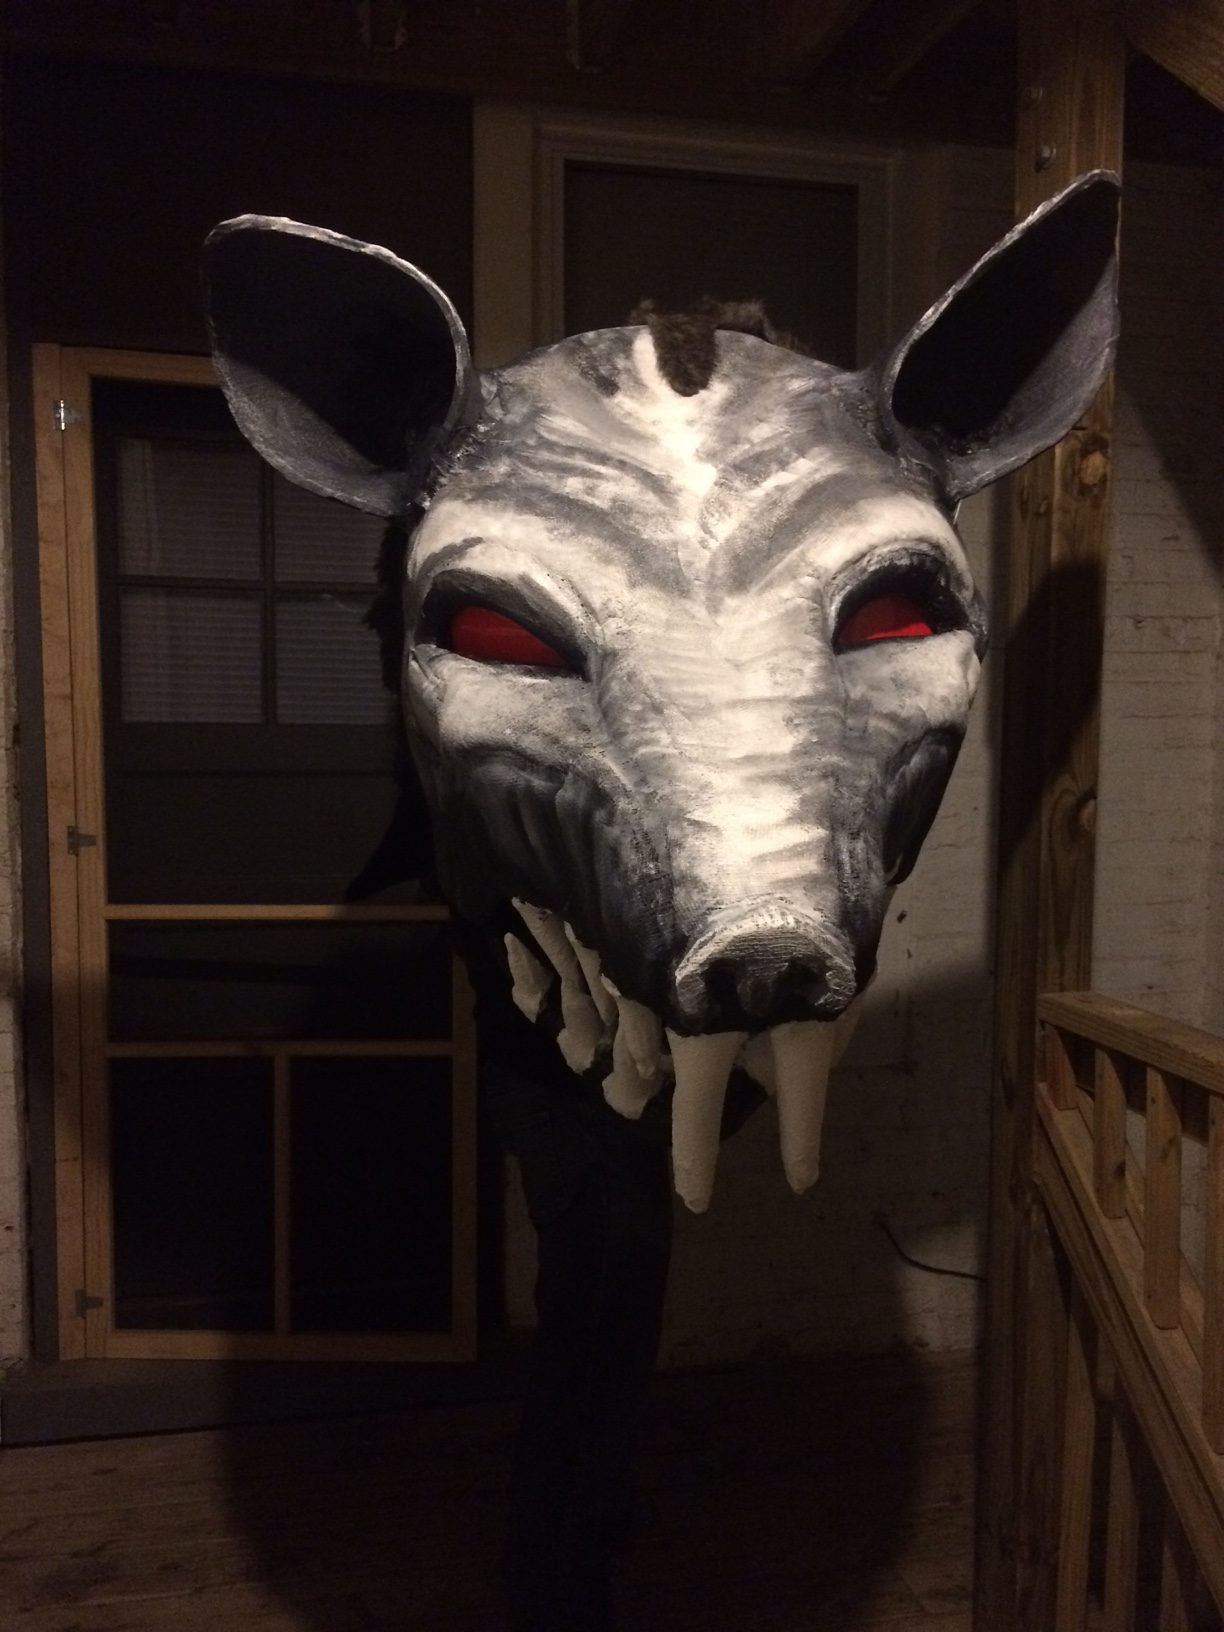 Another view of the completed puppet.